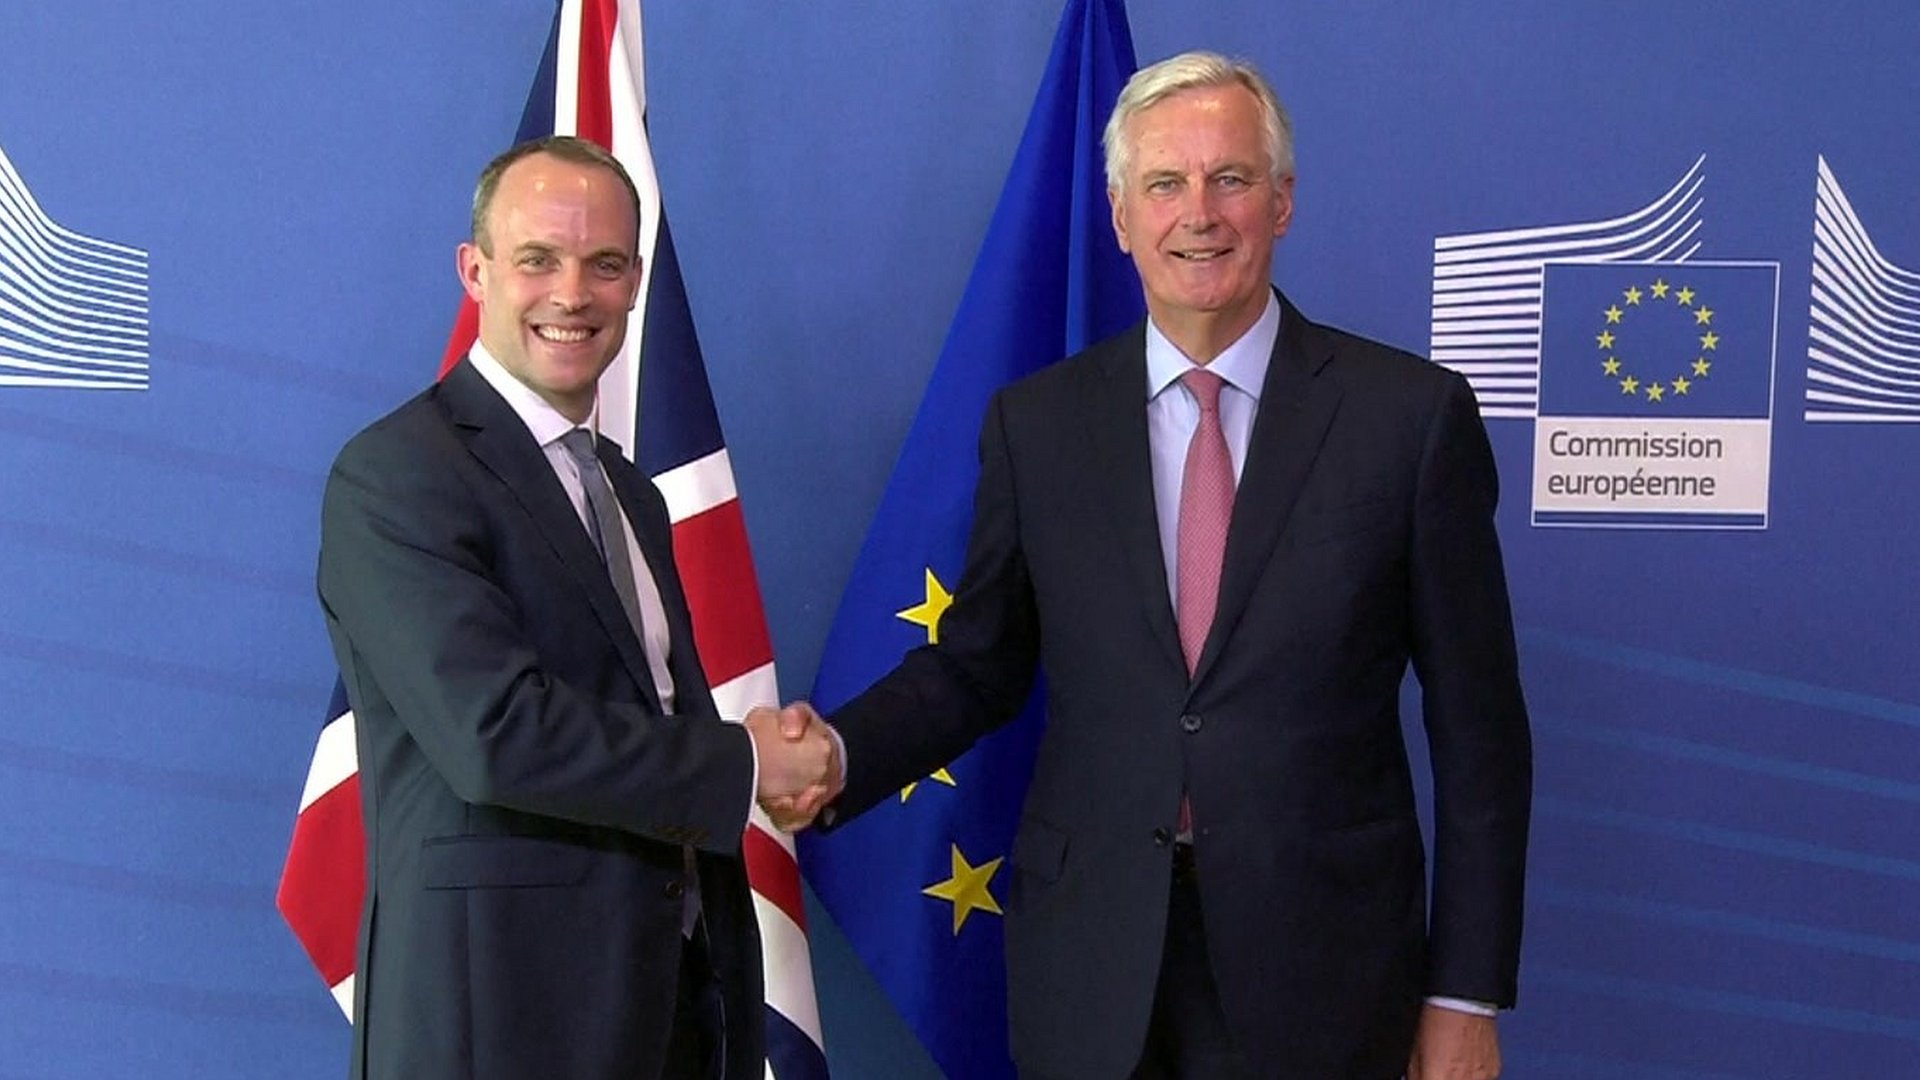 New Brexit Secretary Dominic Raab vows to 'intensify' talks